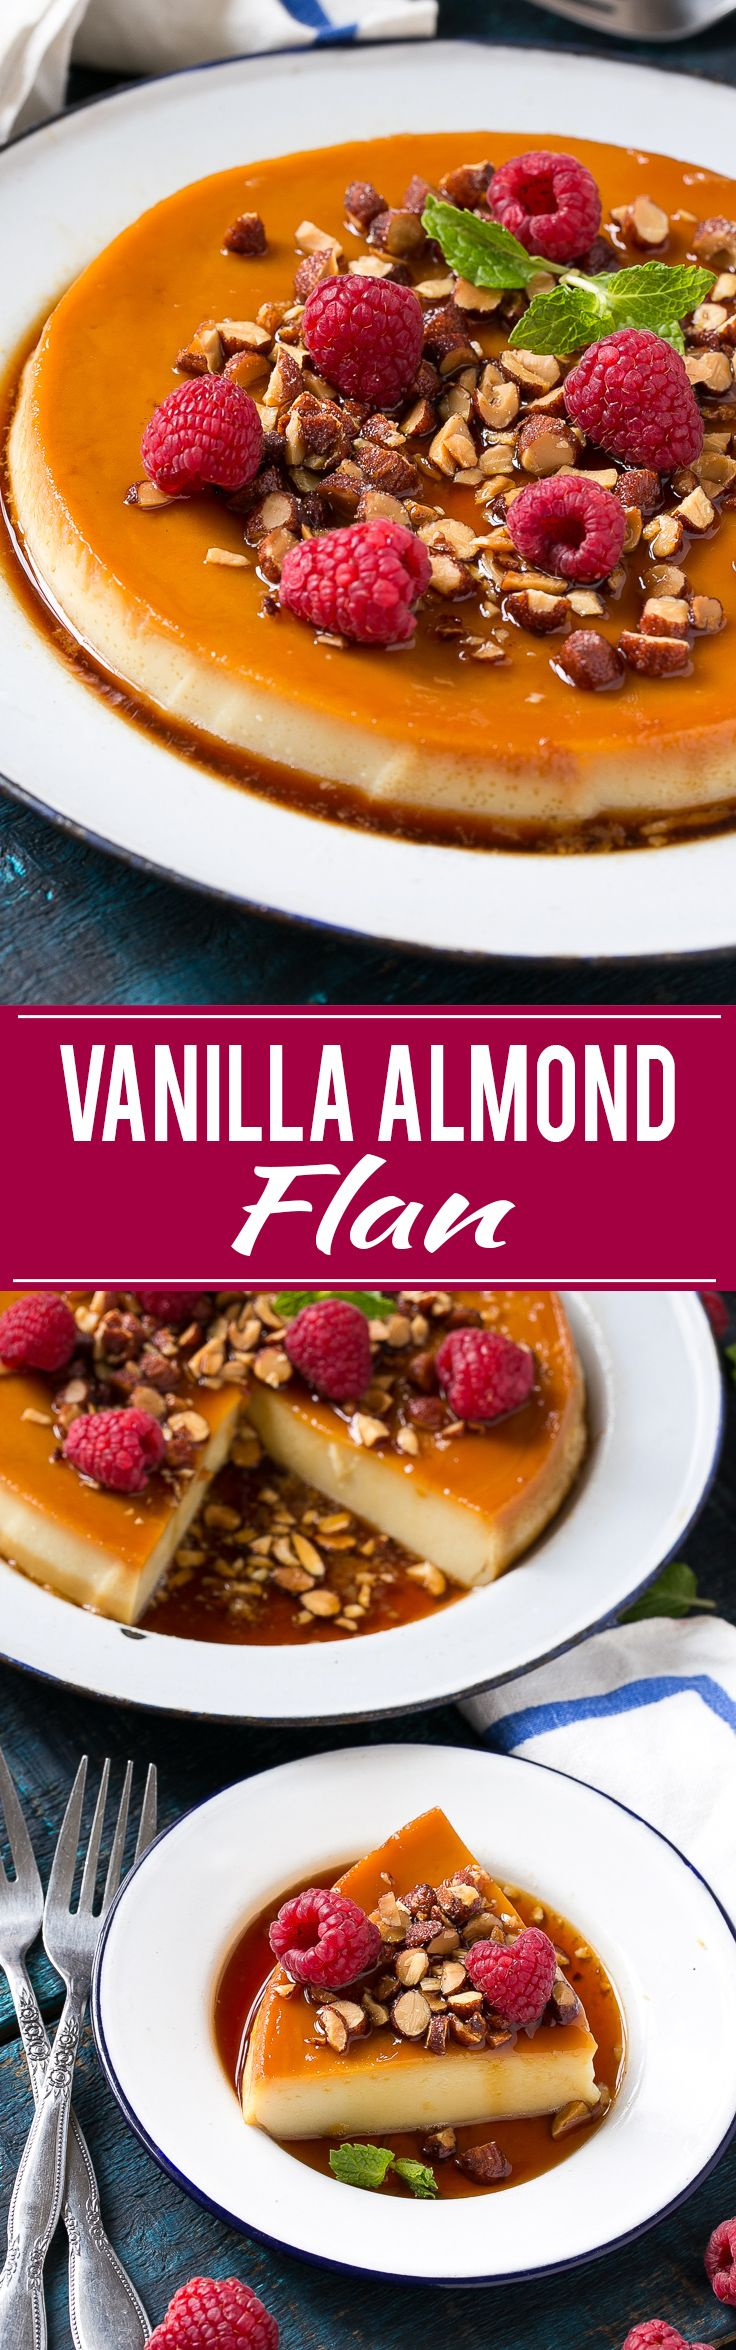 This rich and creamy flan is flavored with vanilla and almonds and is finished off with chopped honey roasted almonds and raspberries. #ad